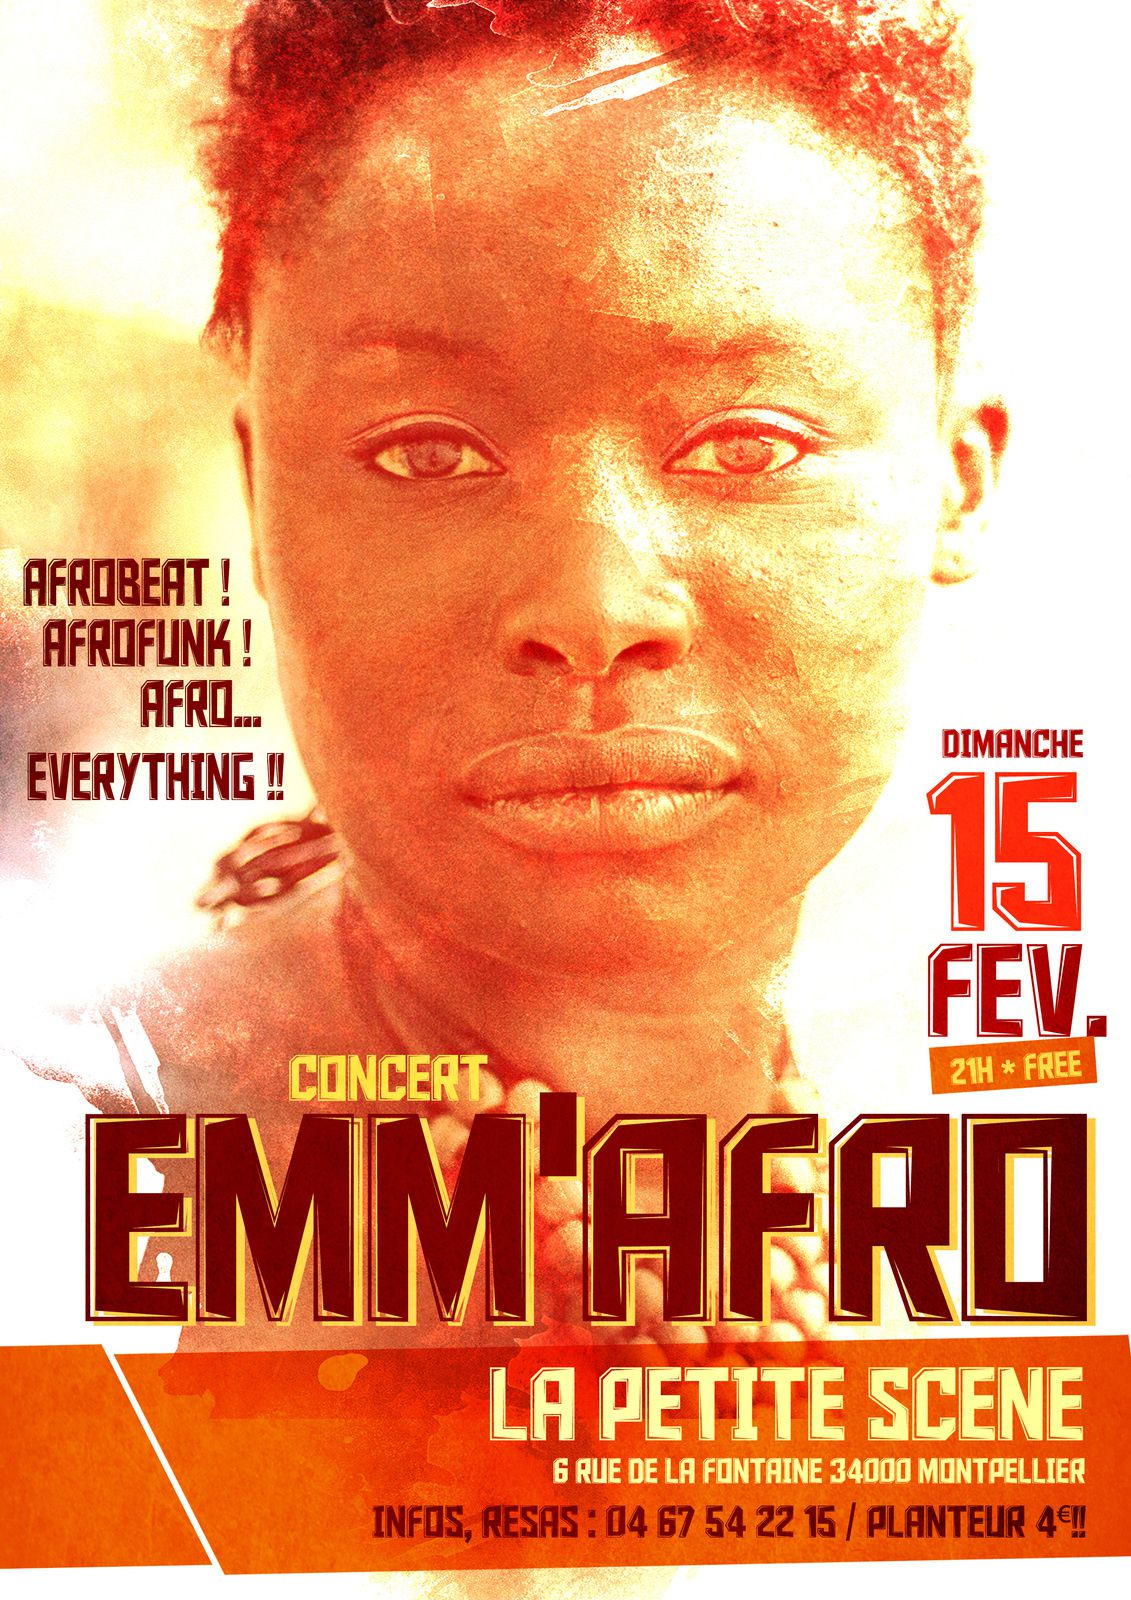 artwork for EMMA LAMADJI